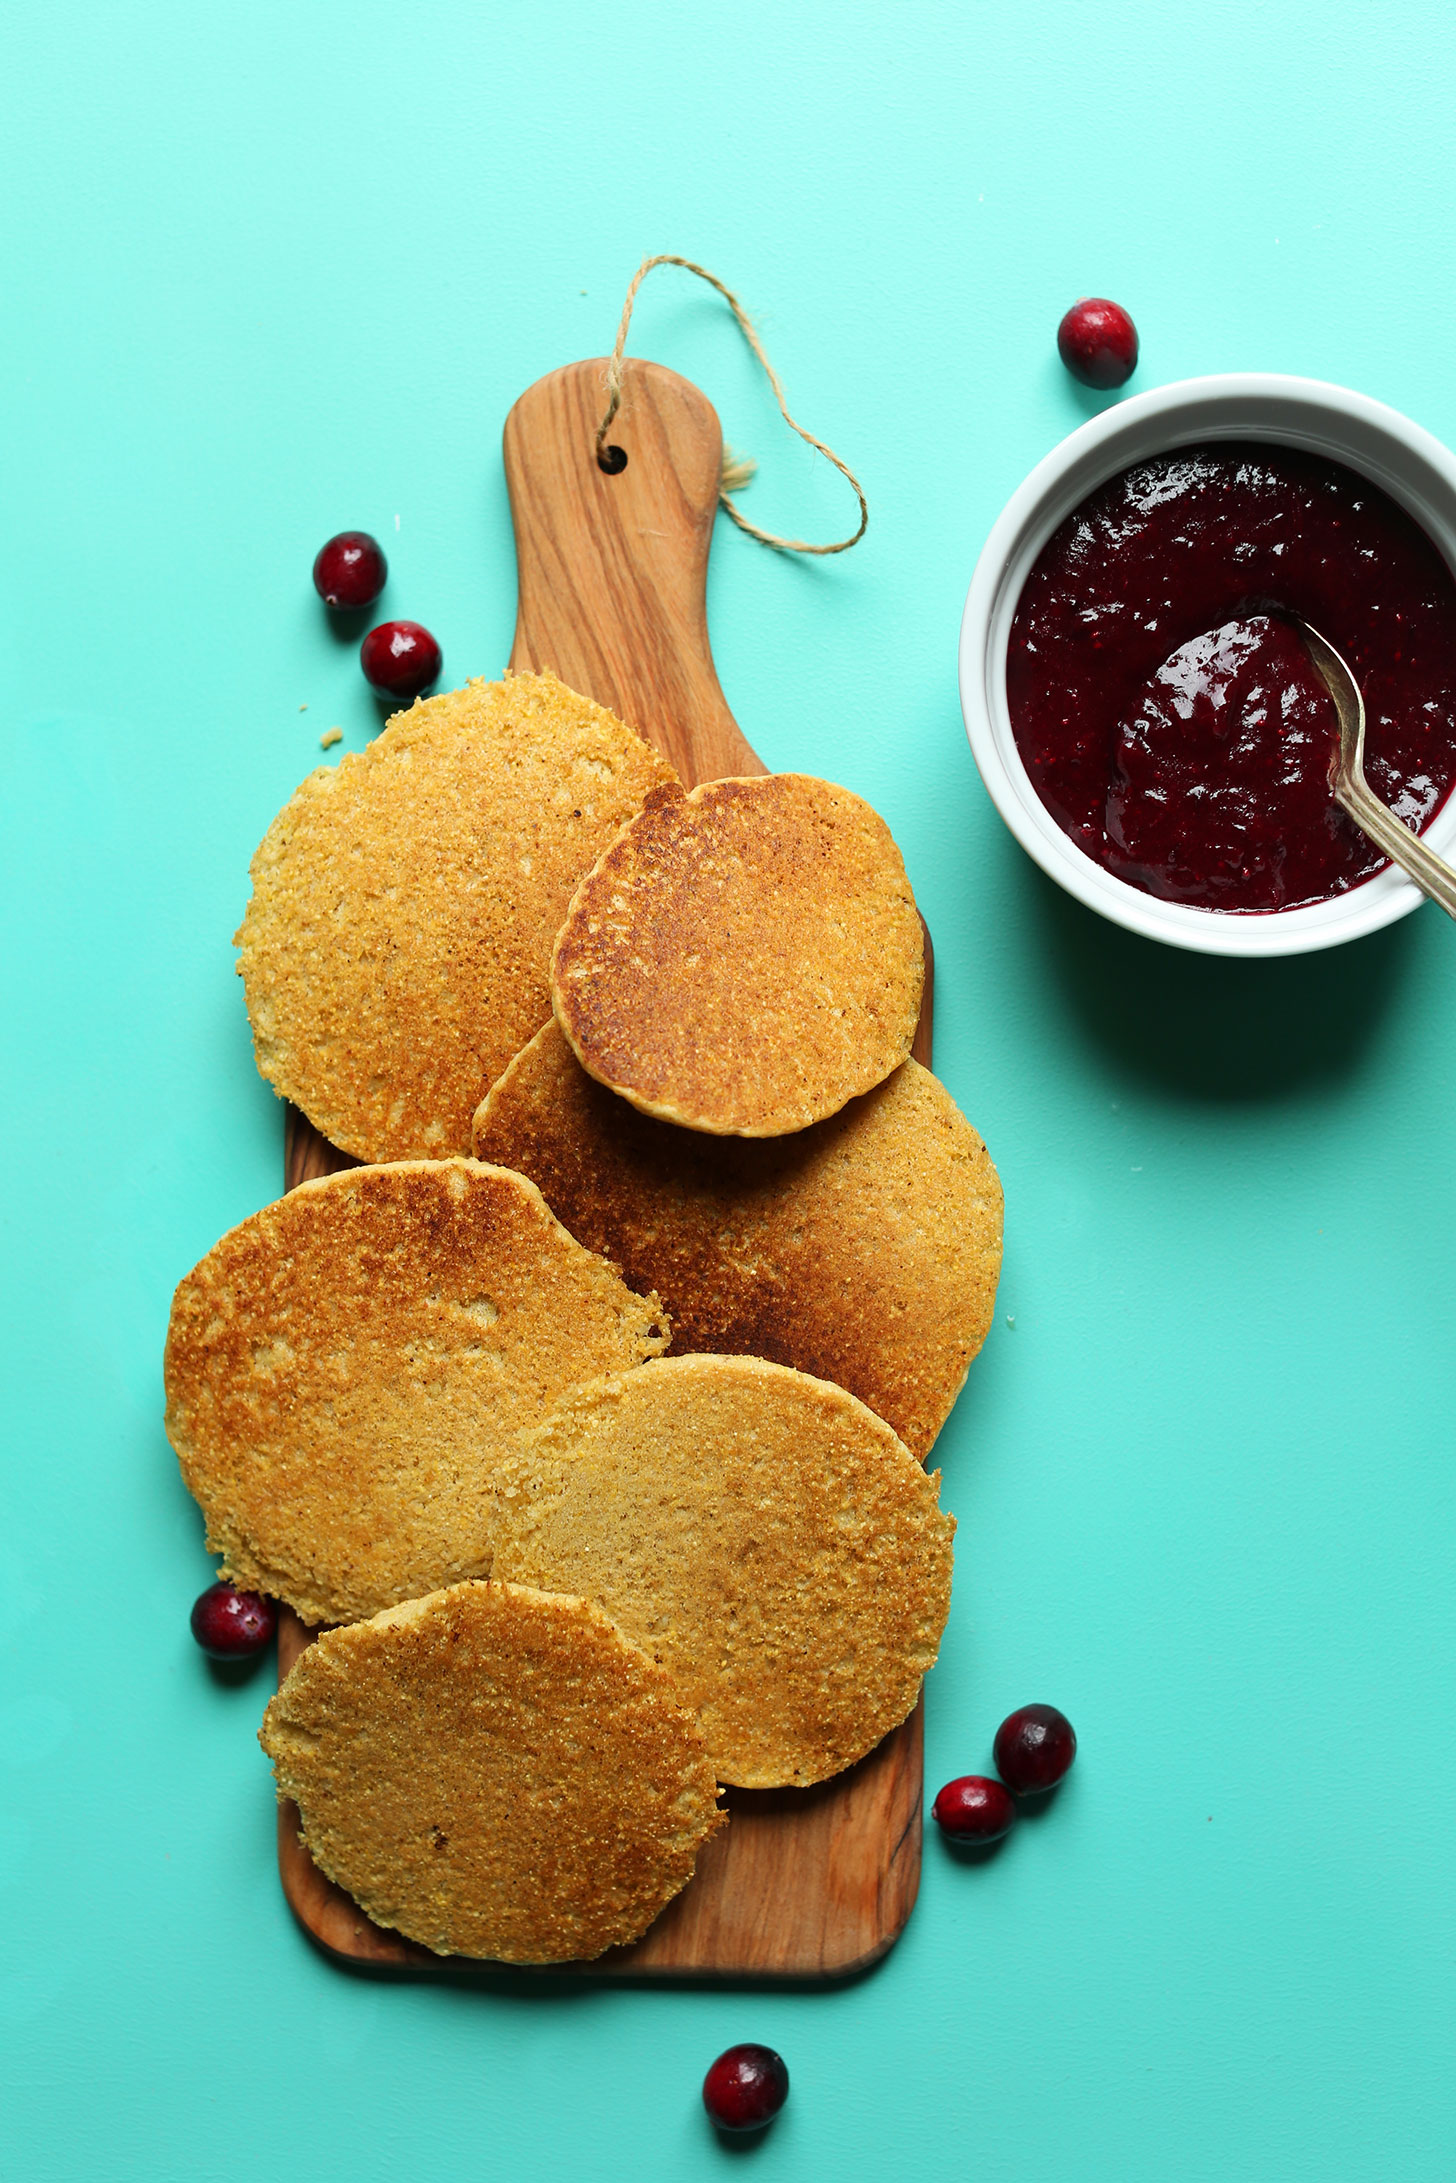 Wood cutting board with freshly made gluten-free cornmeal pancakes and a bowl of Cranberry Compote